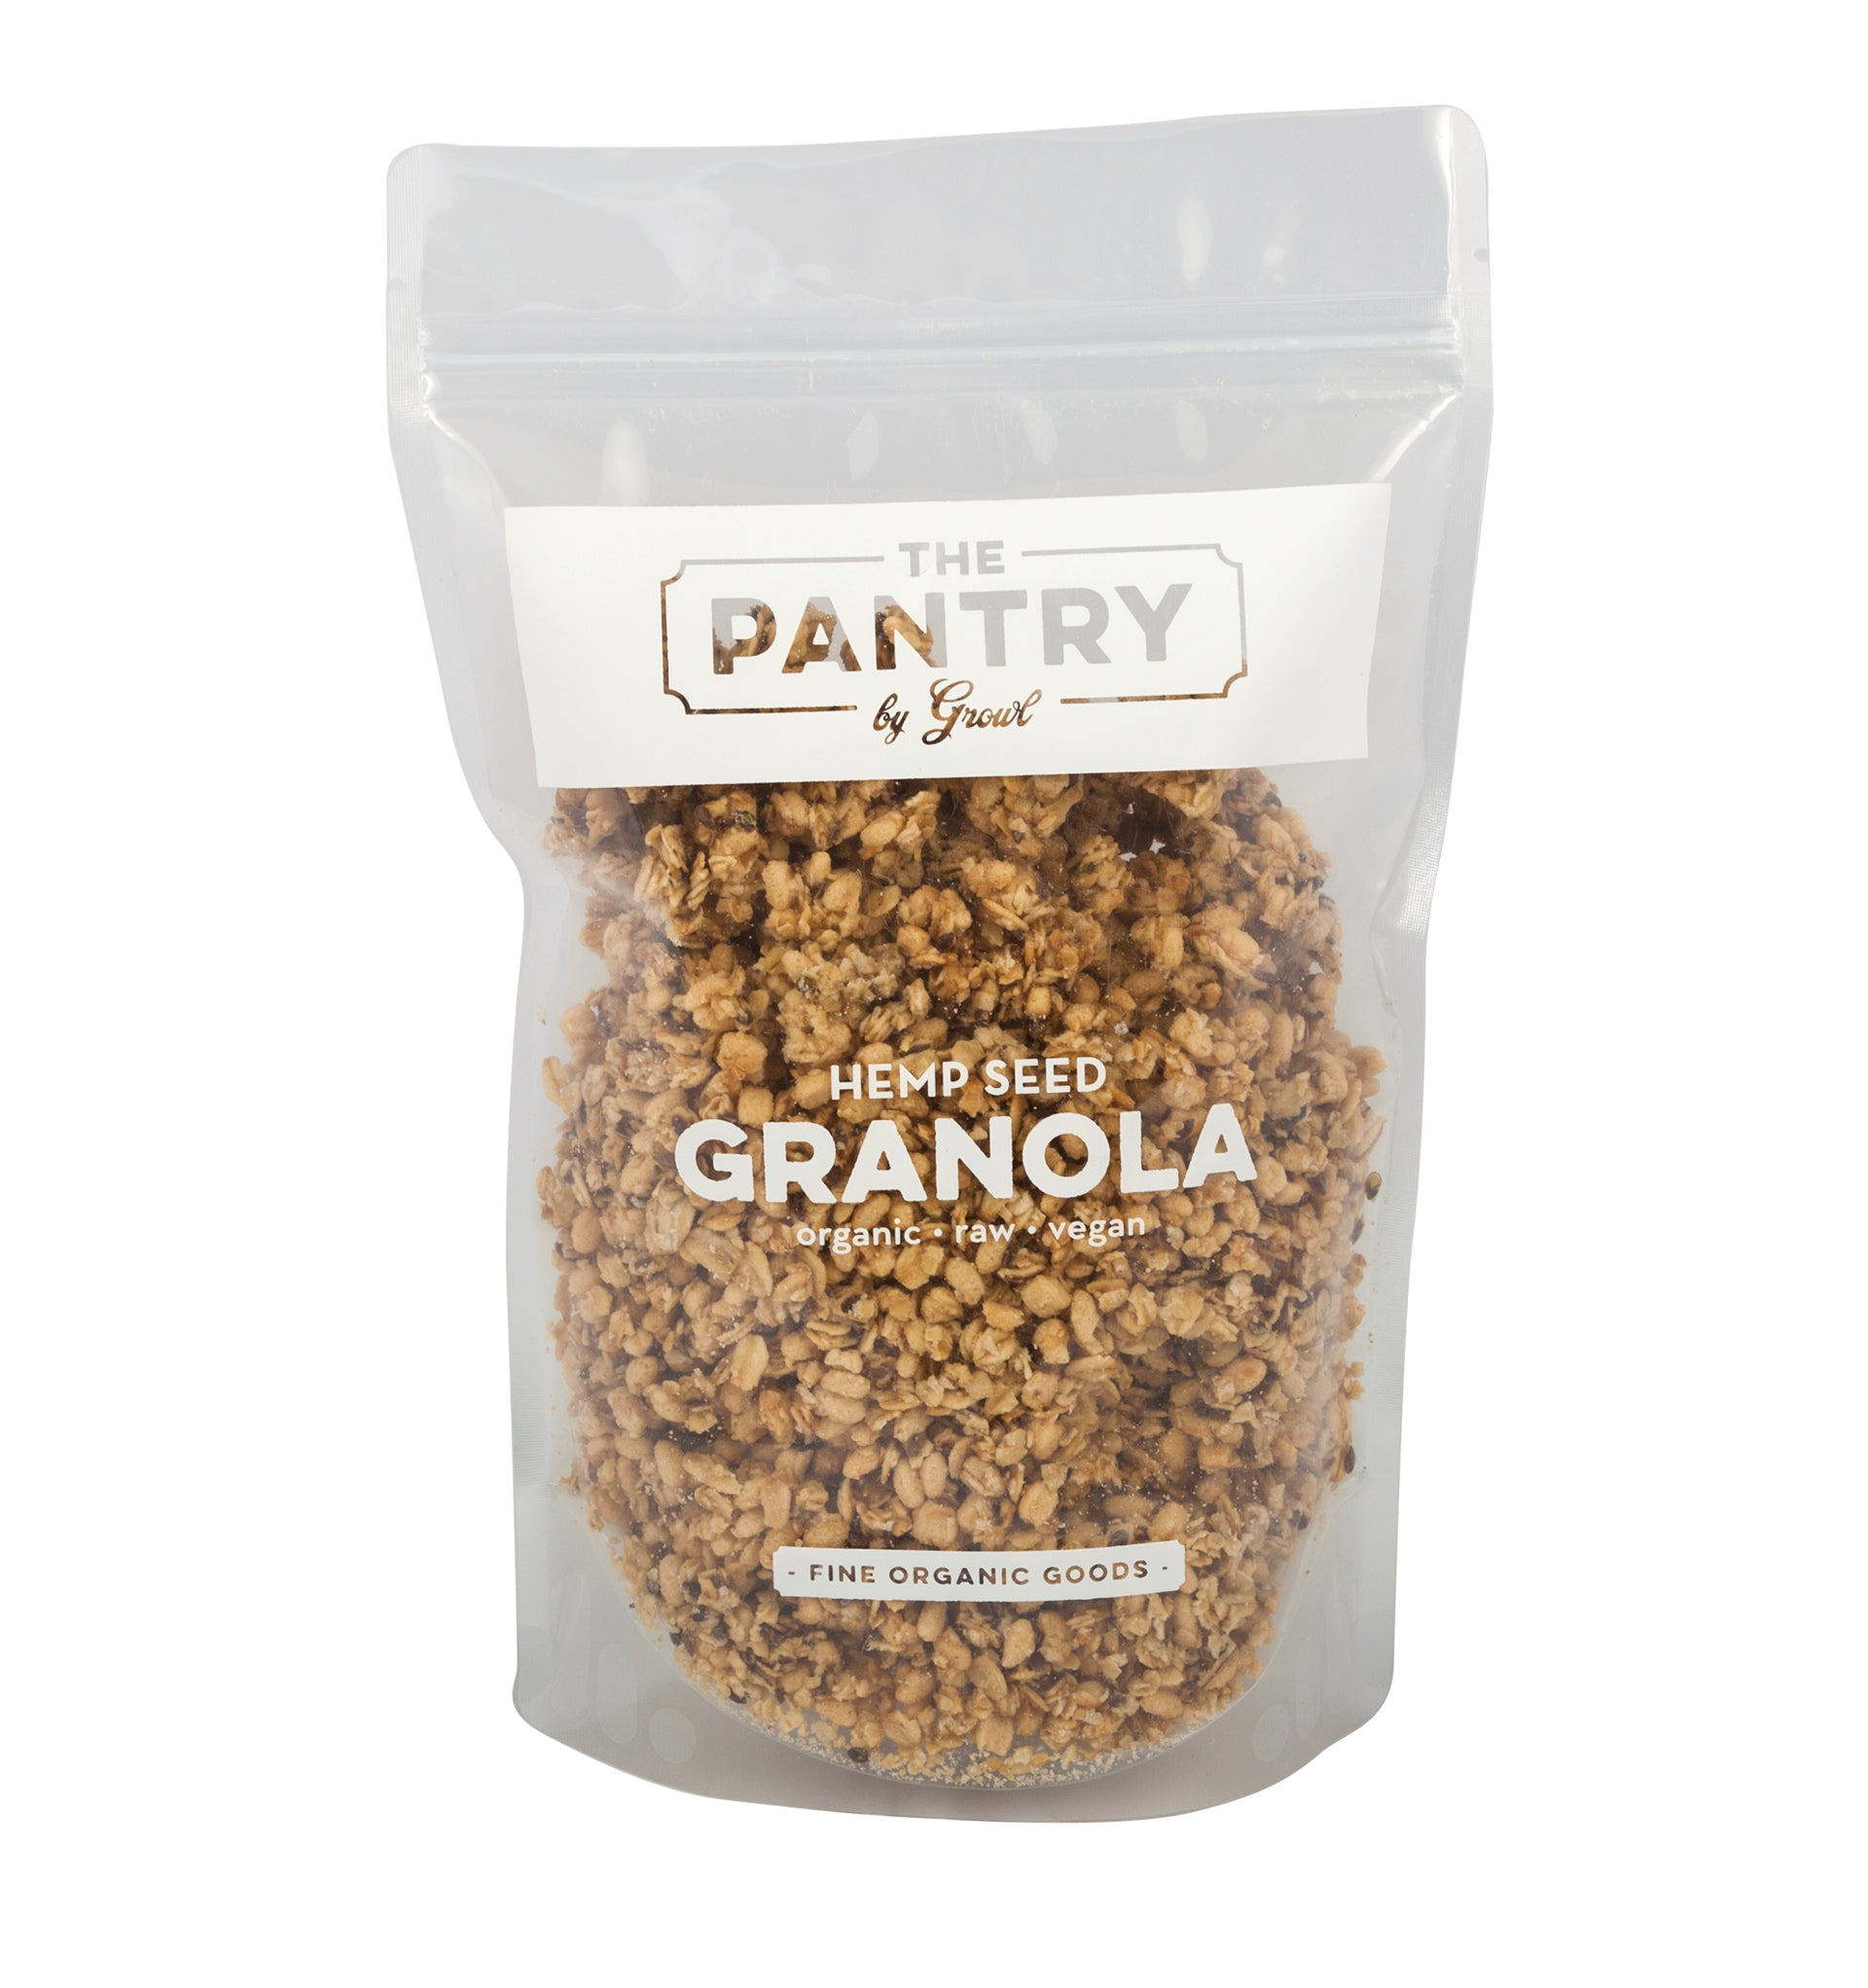 The Pantry by Growl - Hemp Seed Granola